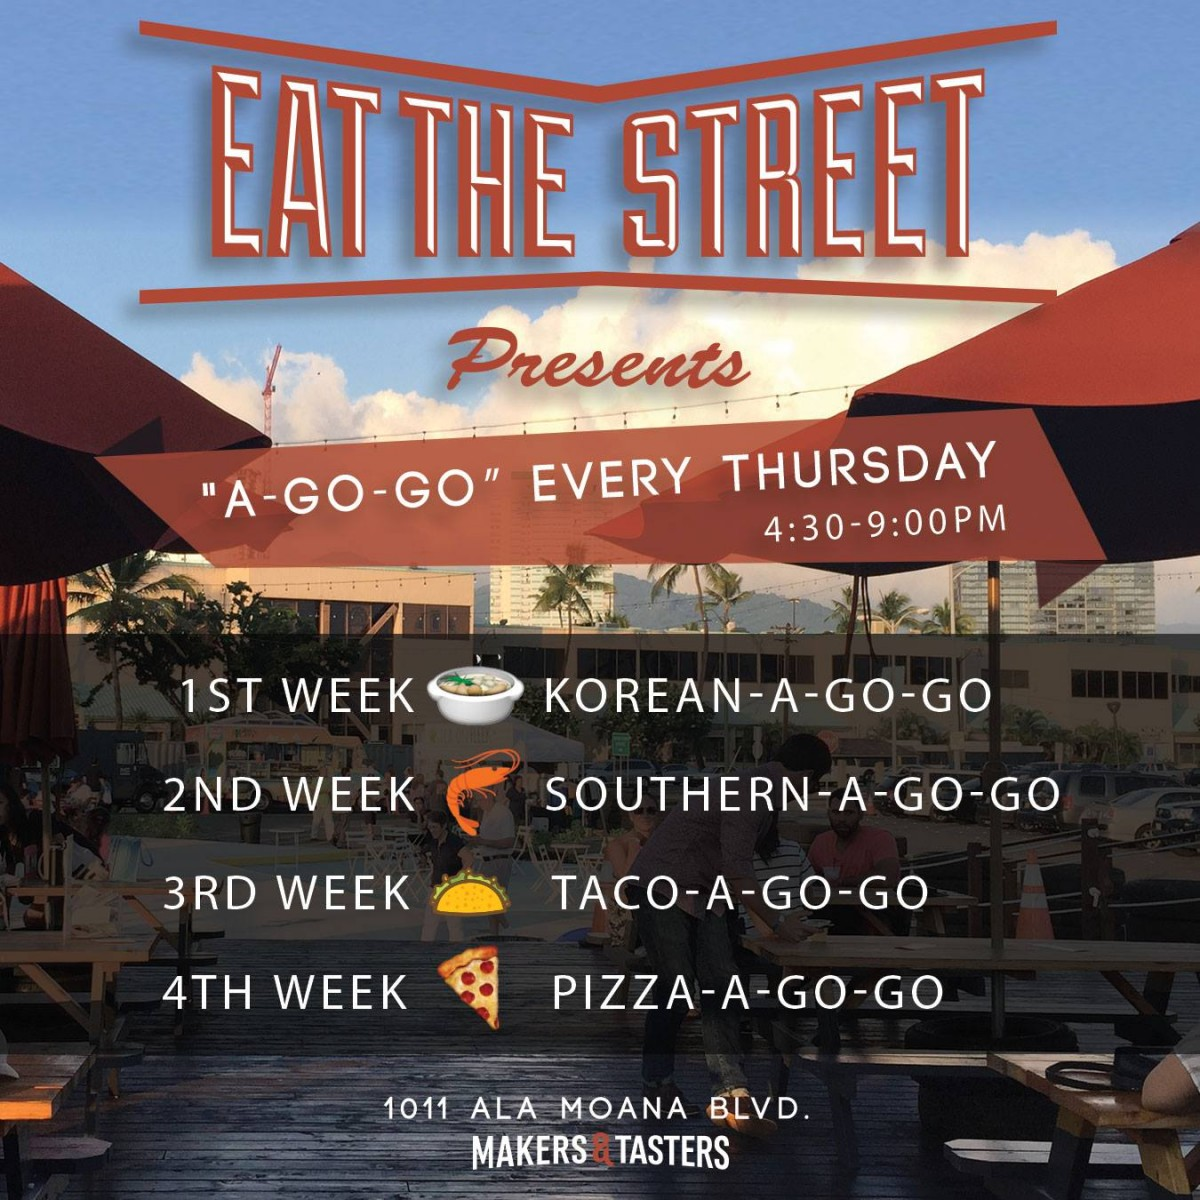 eat the streets at go-go every thursday